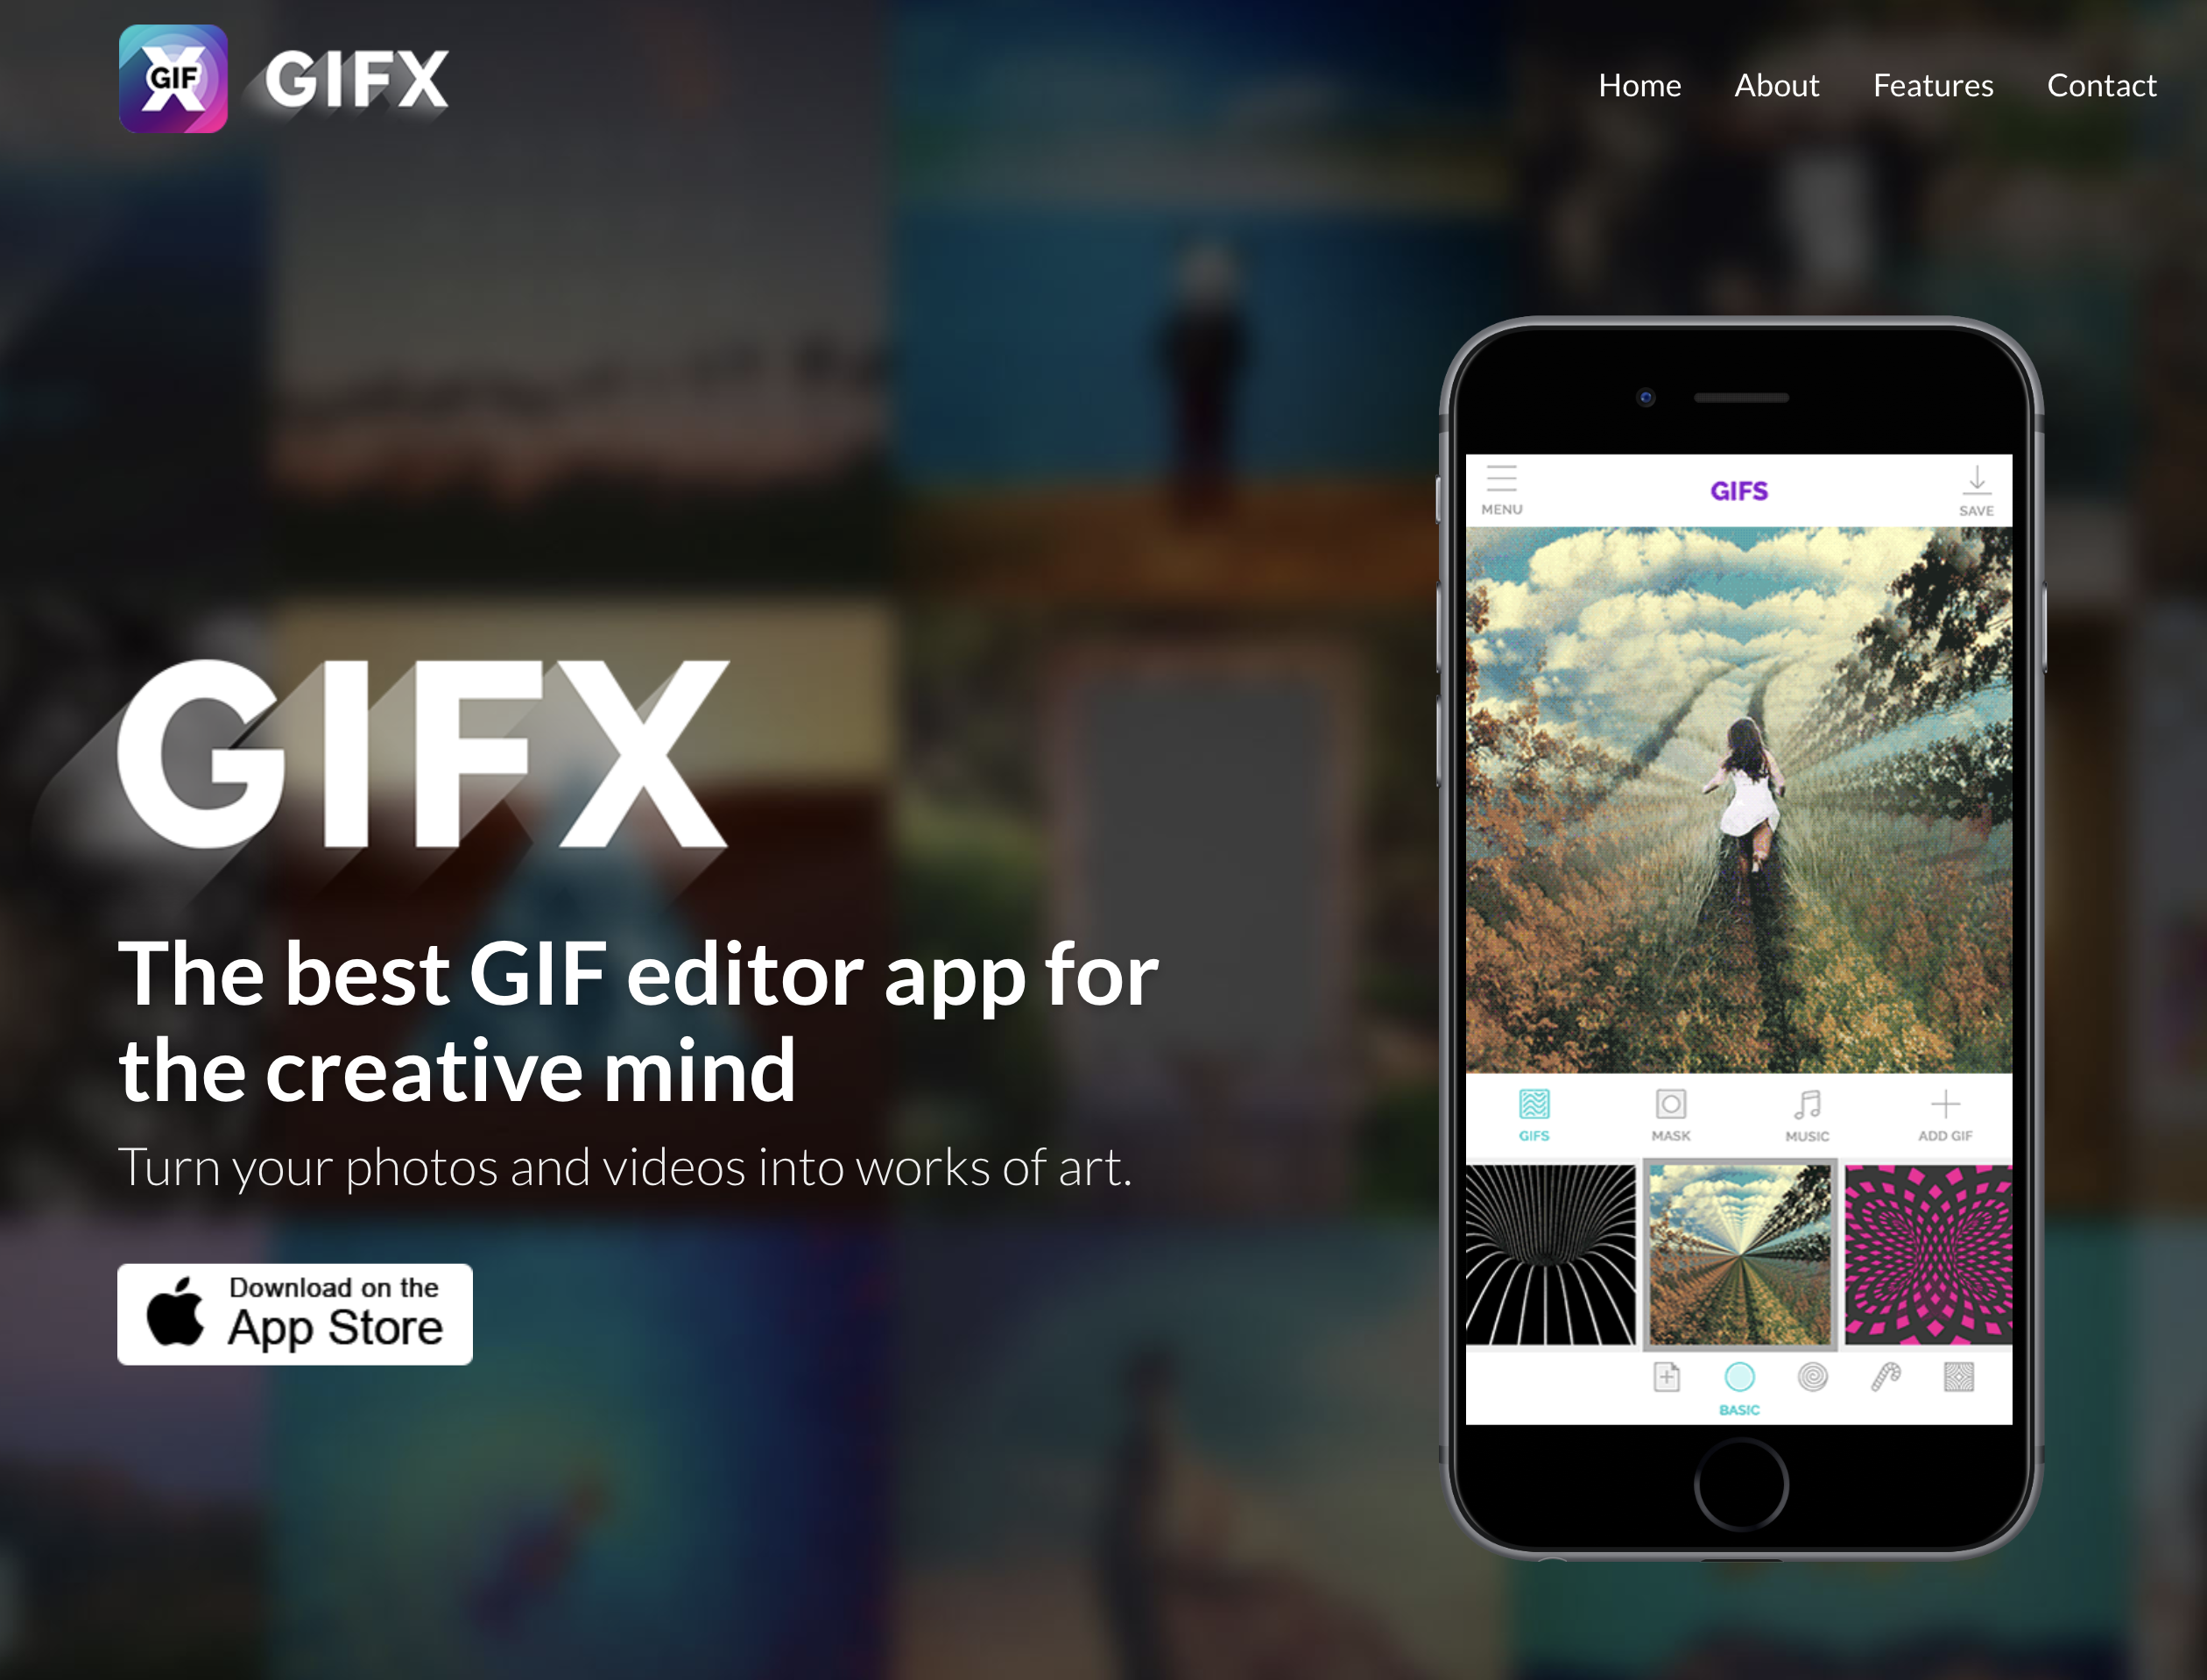 Gifx Apps. Best gif app